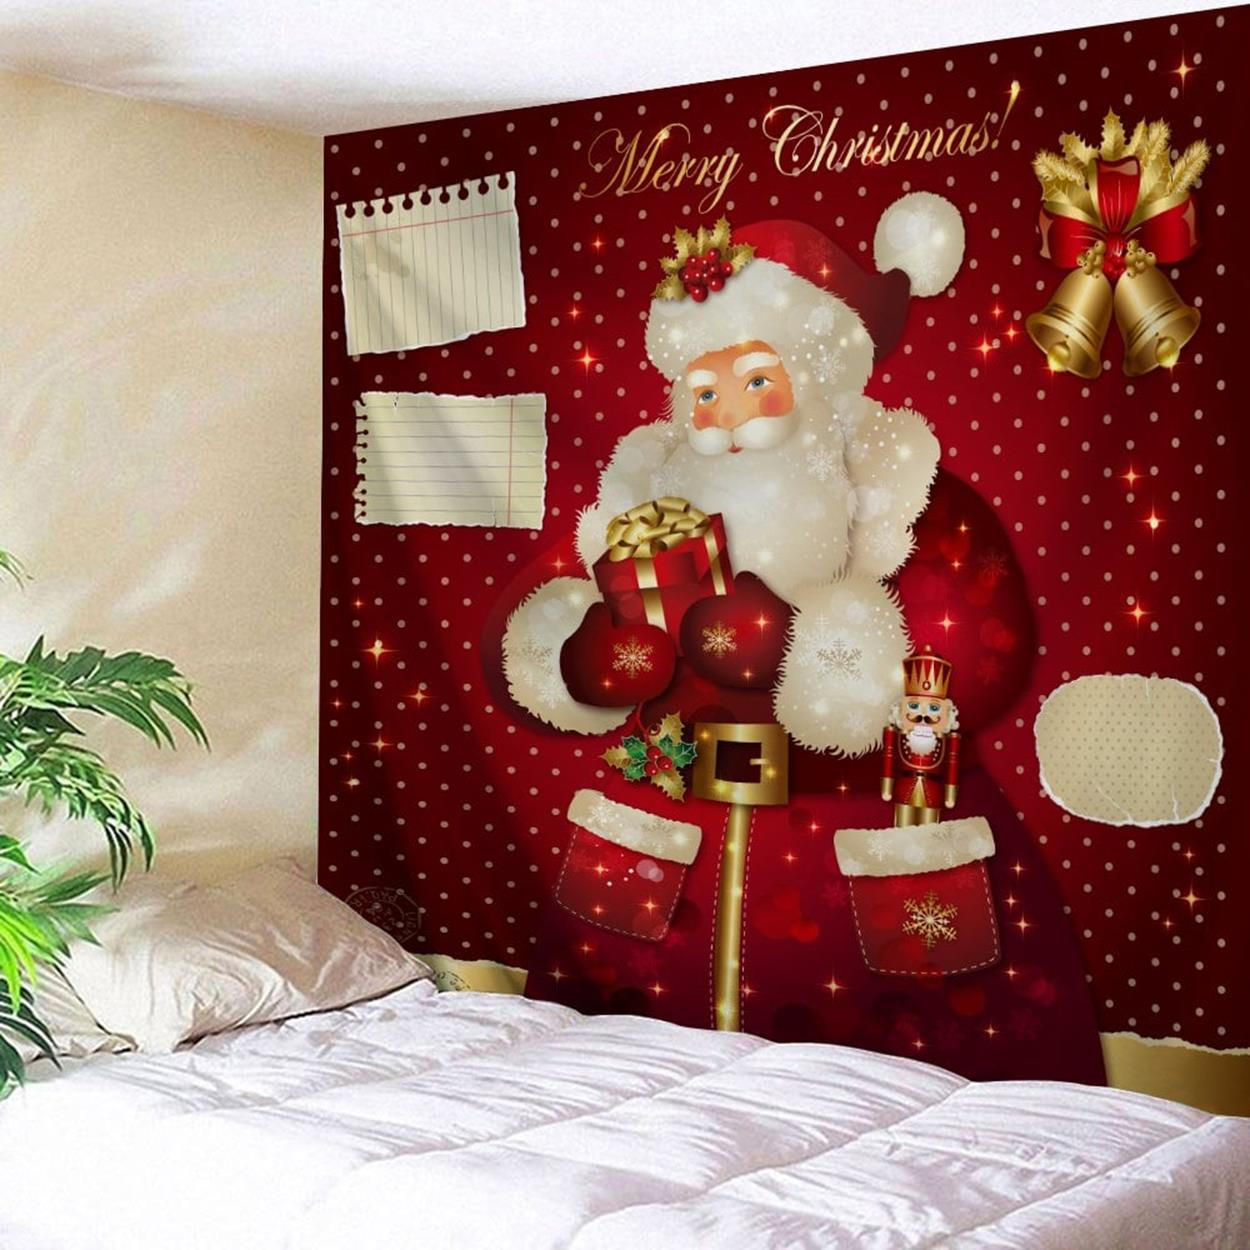 Bathroom with Holiday Wall Decor 12